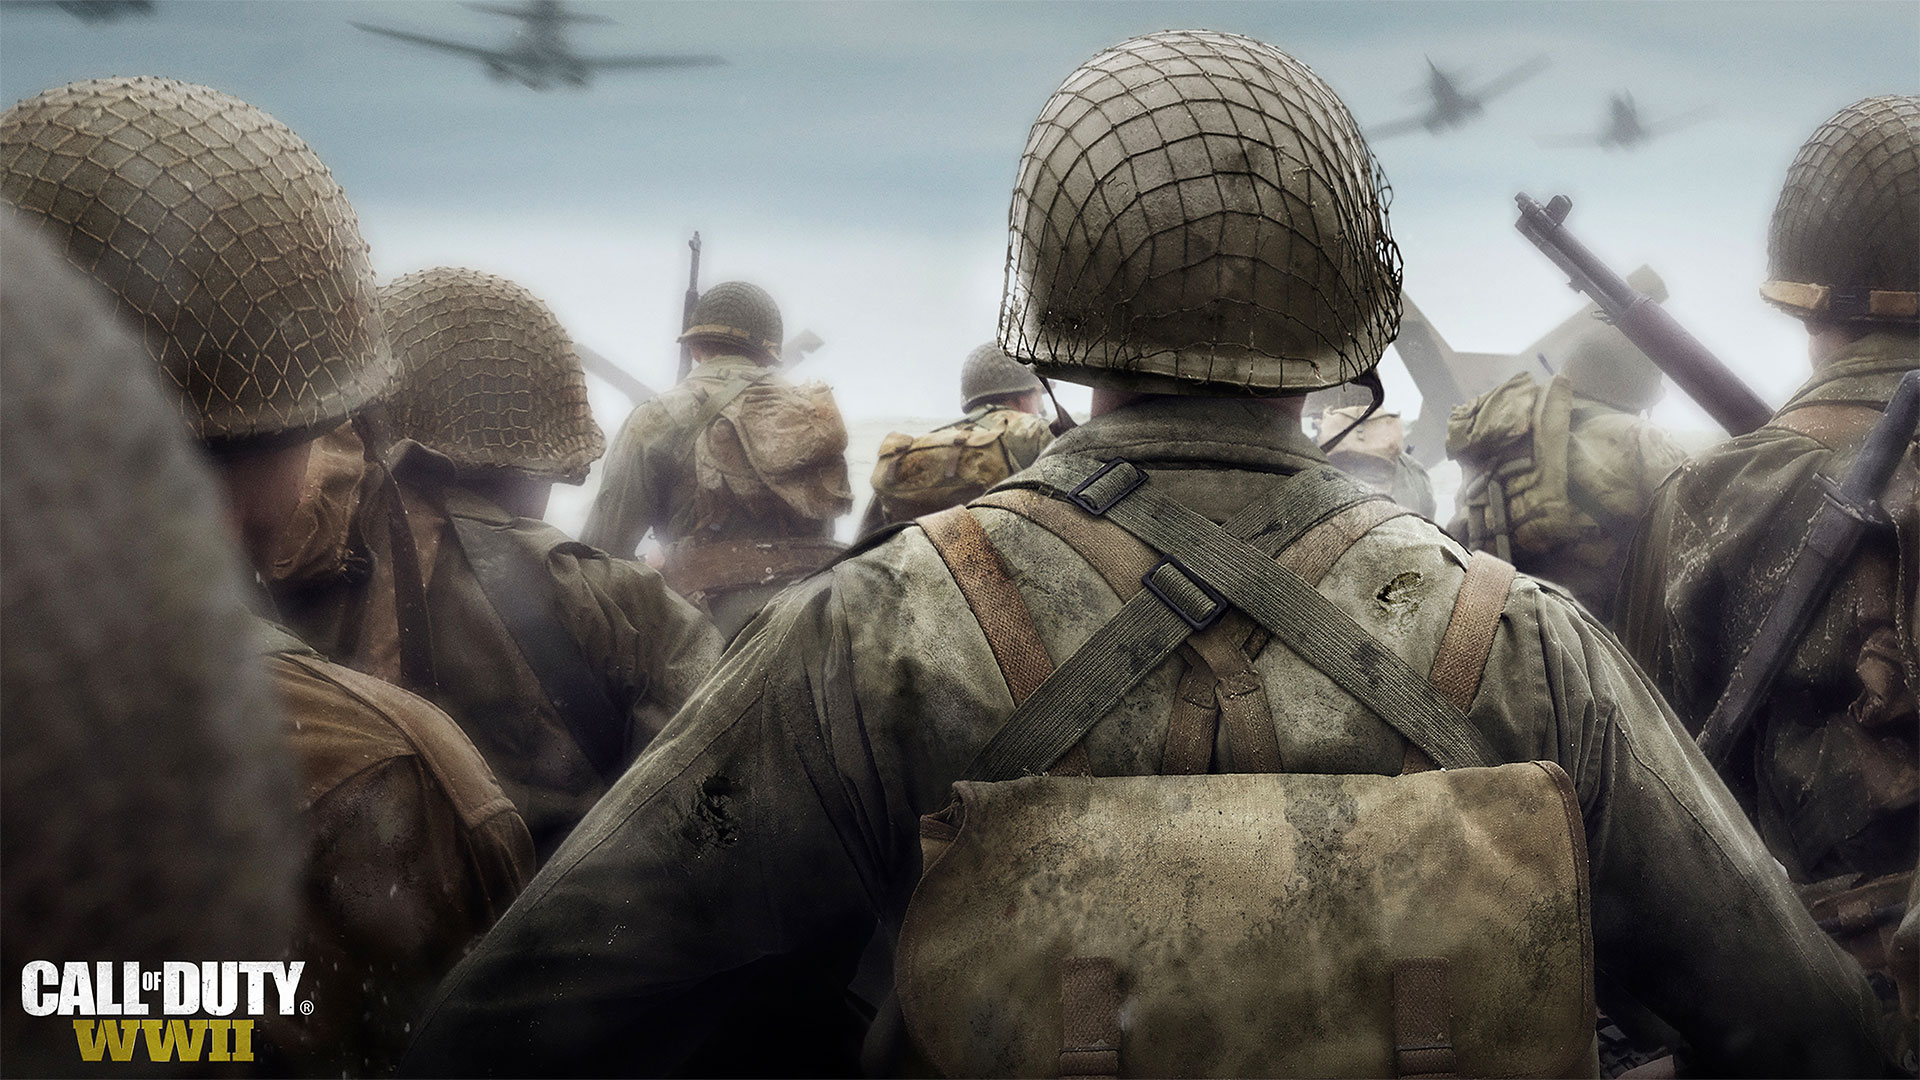 ... OF DUTY WWII 1080p Wallpaper ...